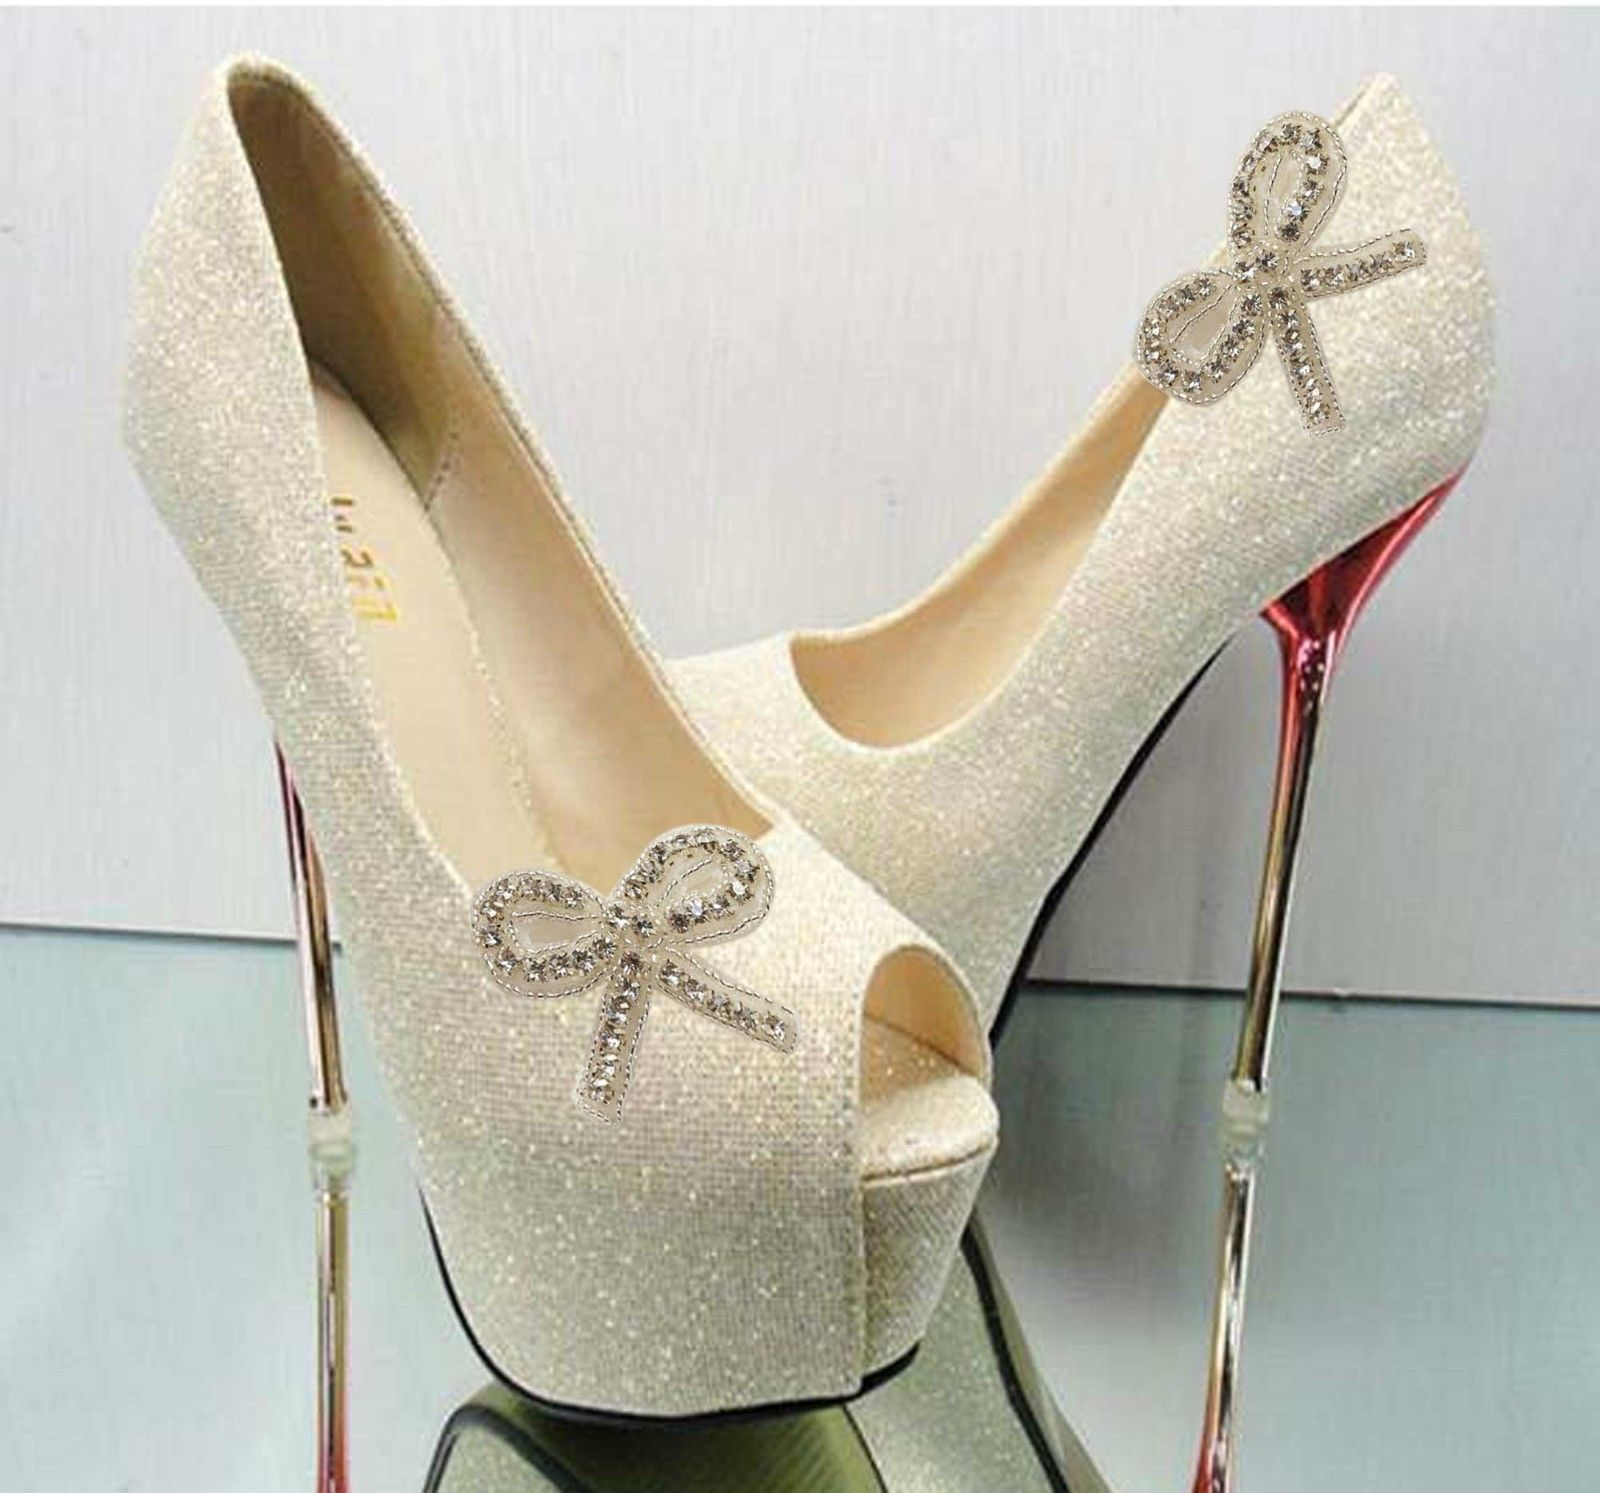 Ribbon Bow Rhinestone Crystal Wedding Bridal Sandal Shoe Clips Decorations  Pair c8e71cc88594